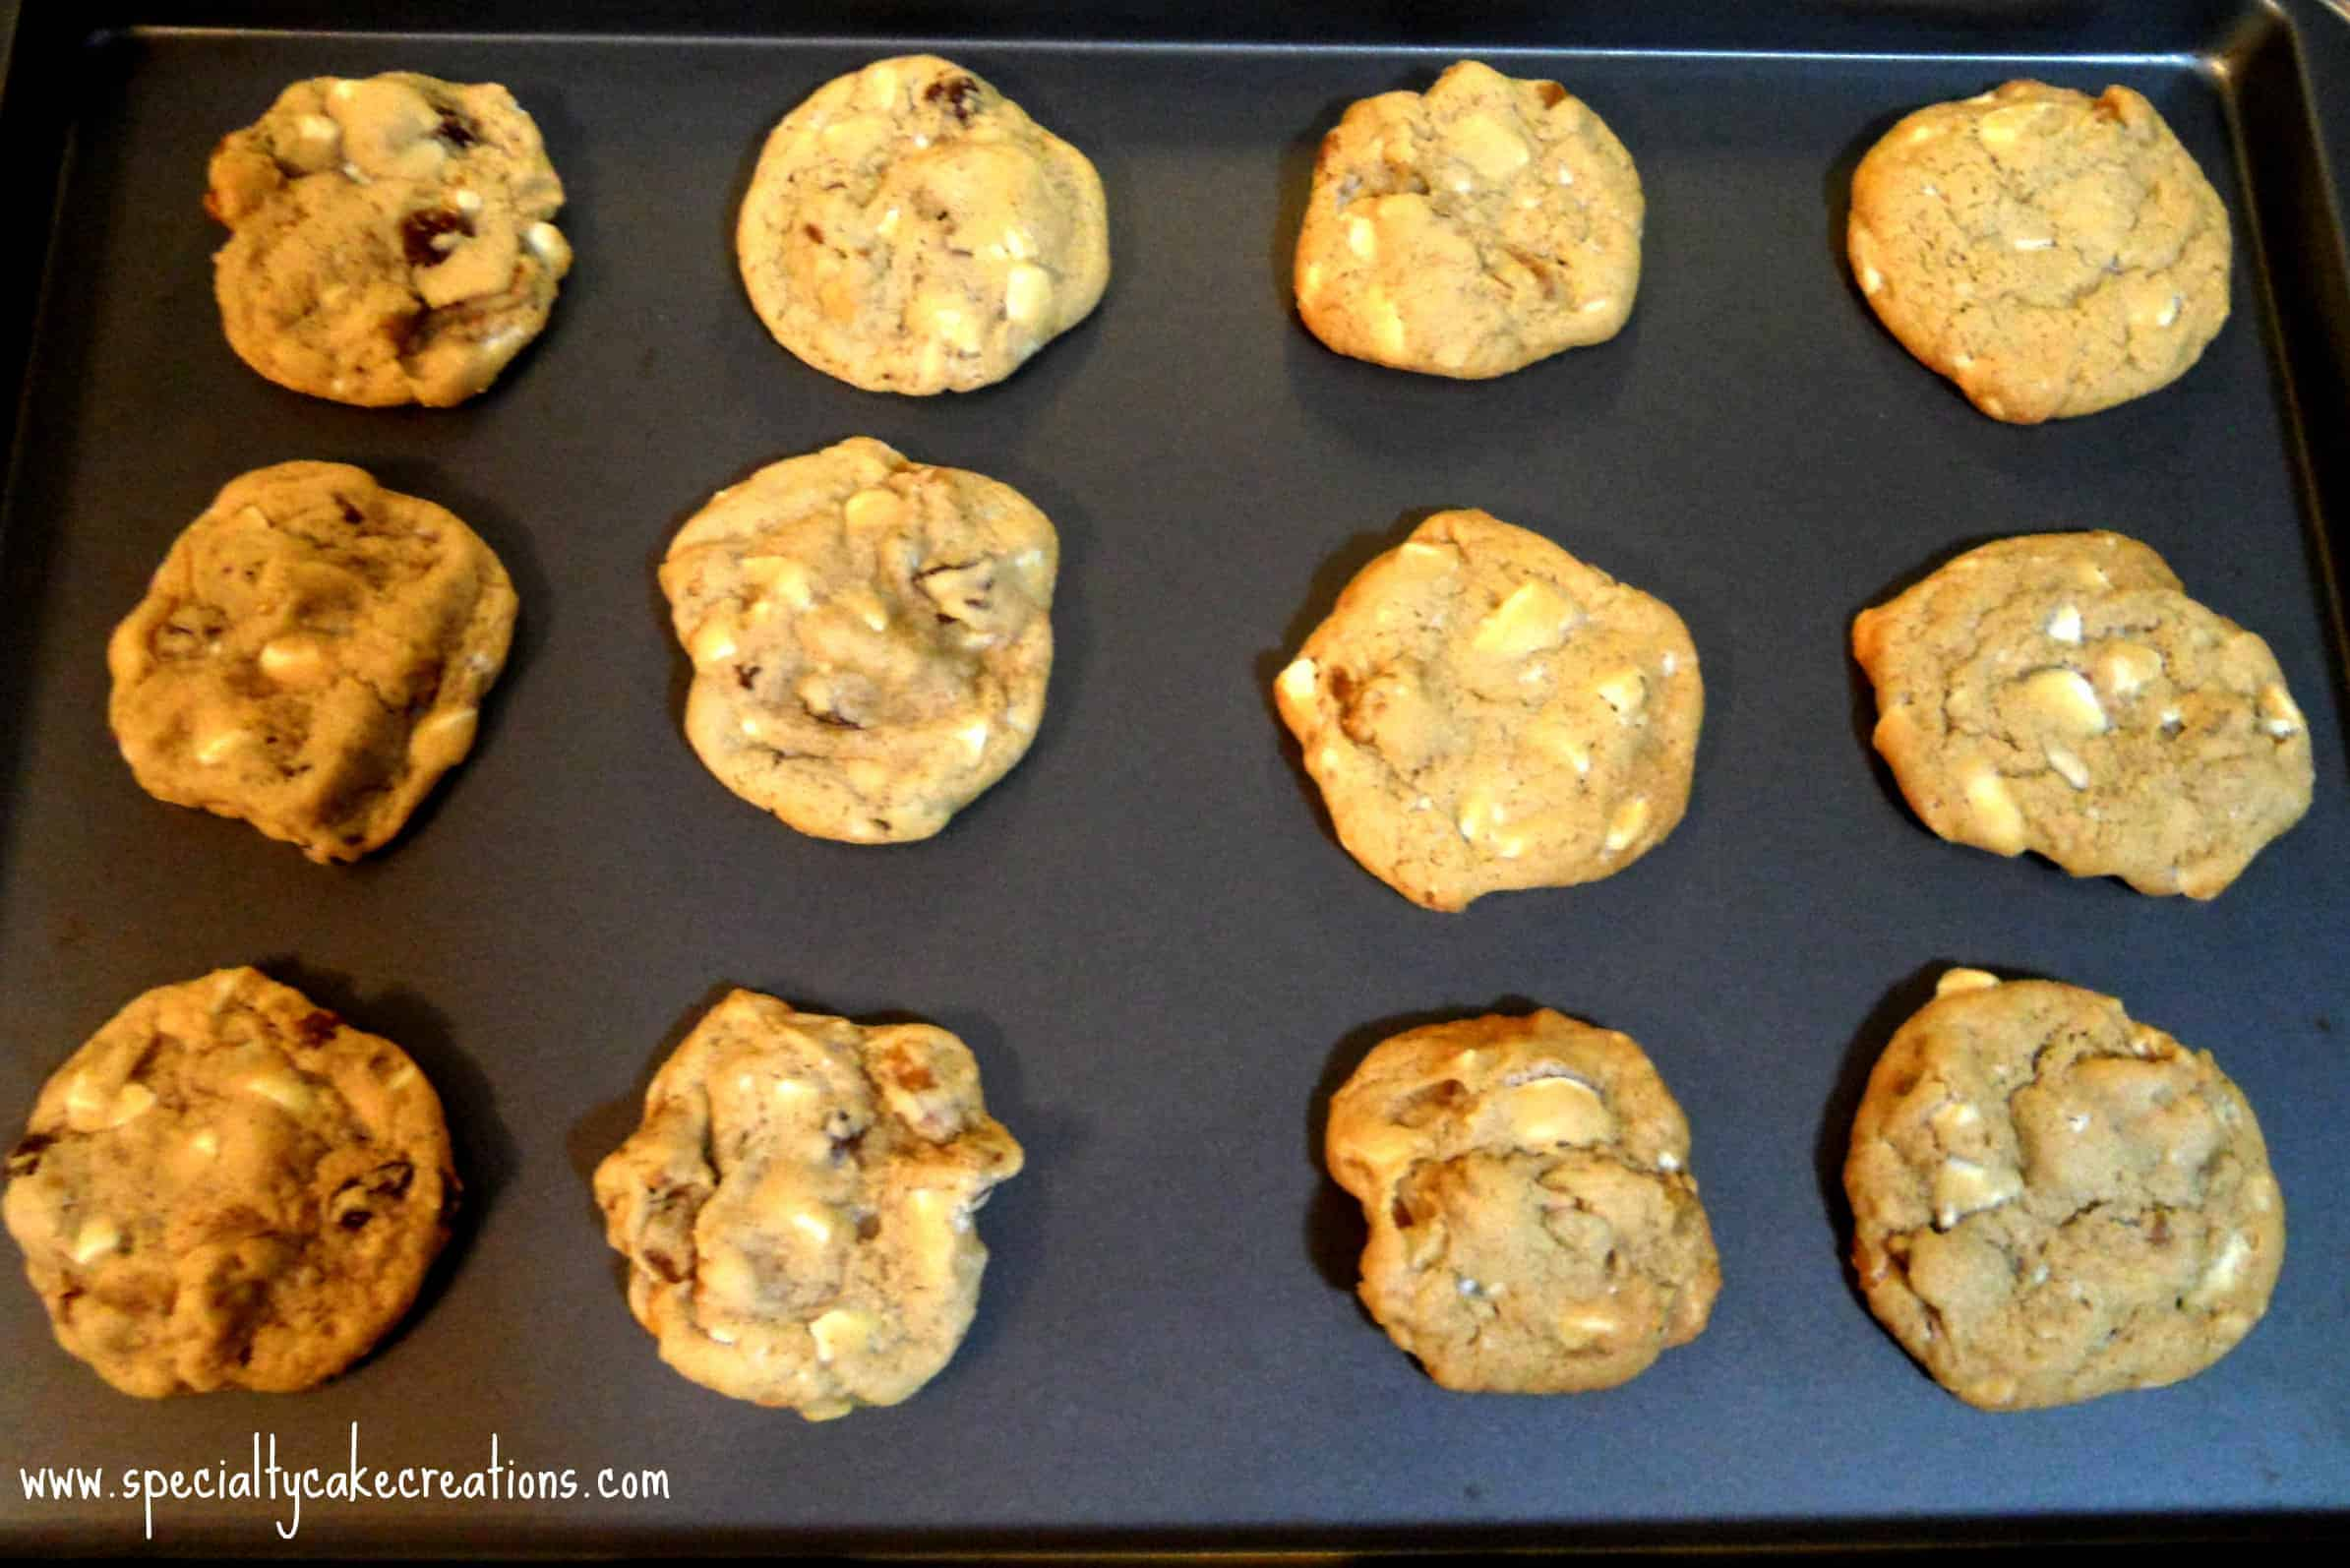 Maple Walnut Cookies on Tray